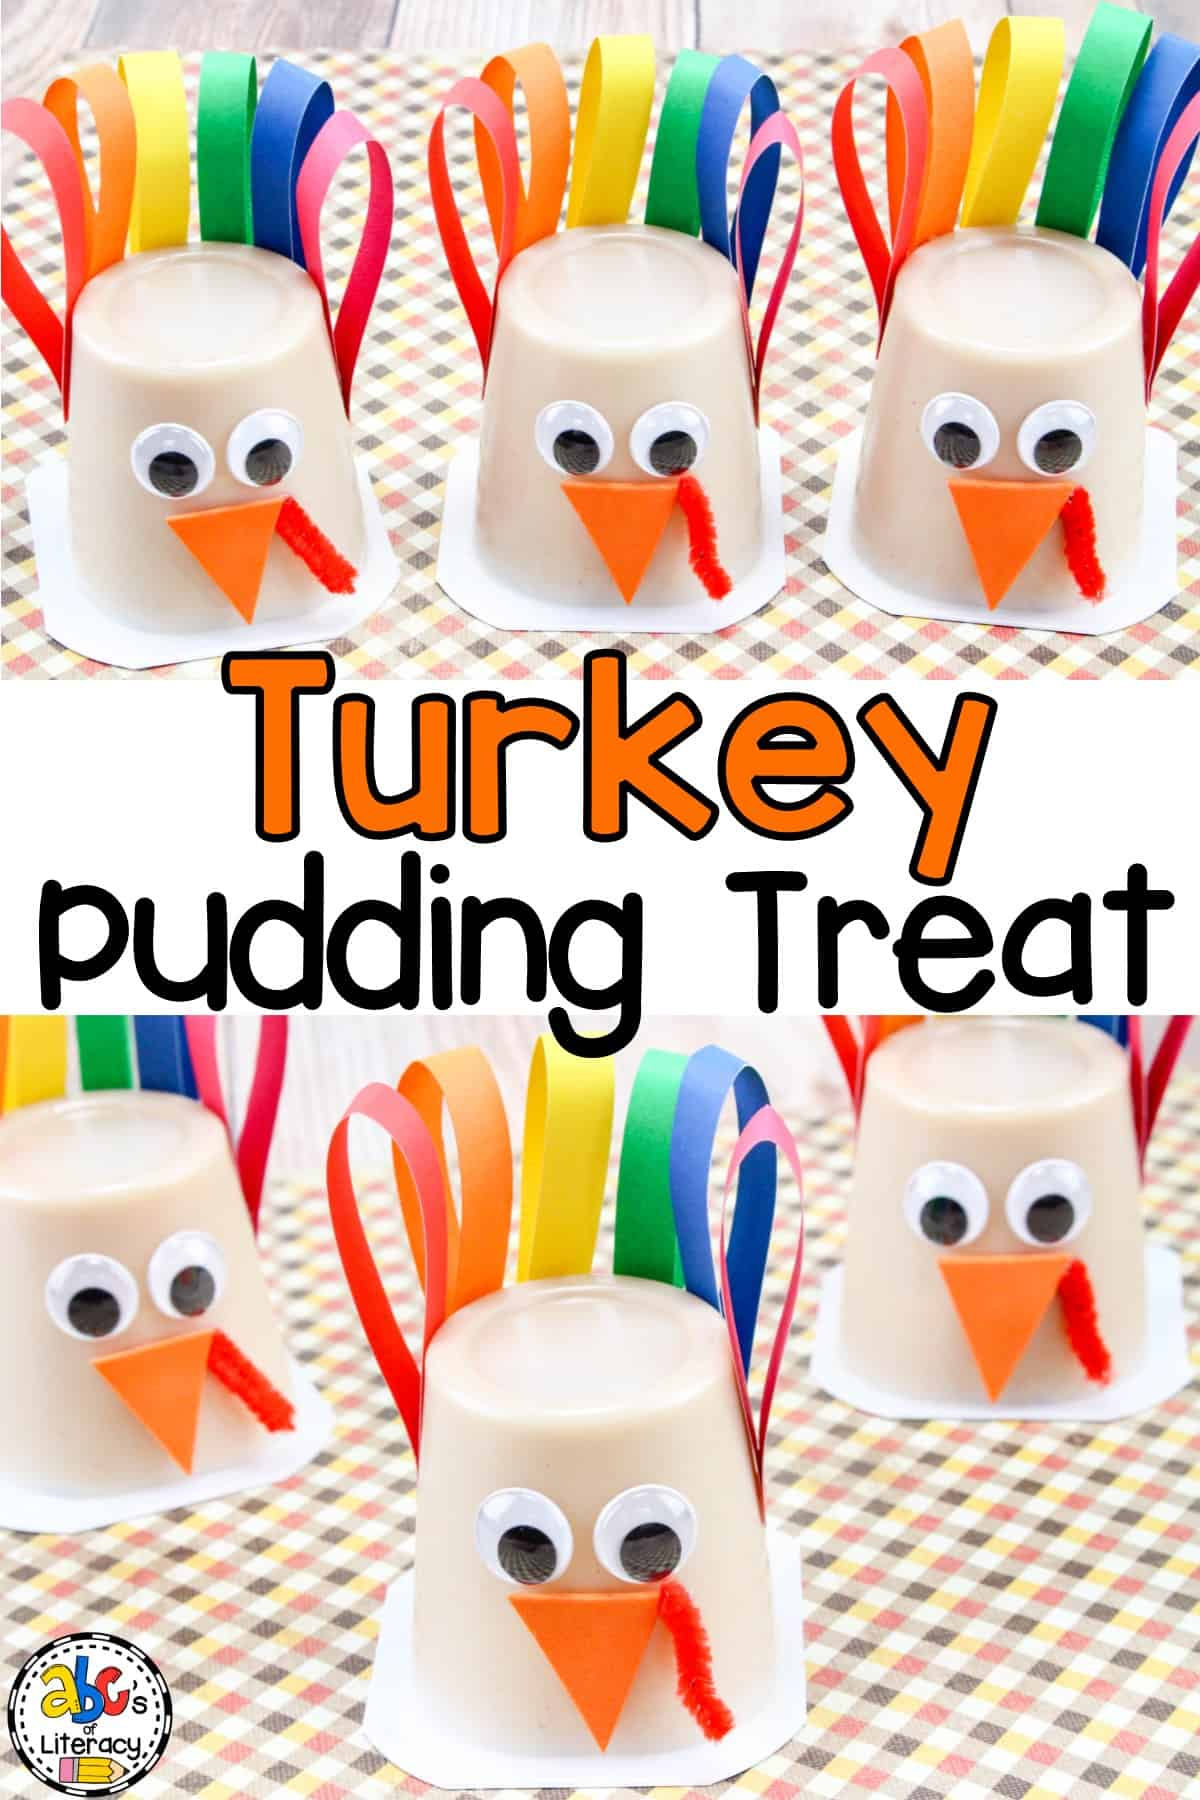 Are you looking for a fun snacktivity for your kids to do for Thanksgiving? These Turkey Pudding Cup Treats are a simple craft and snack in one.